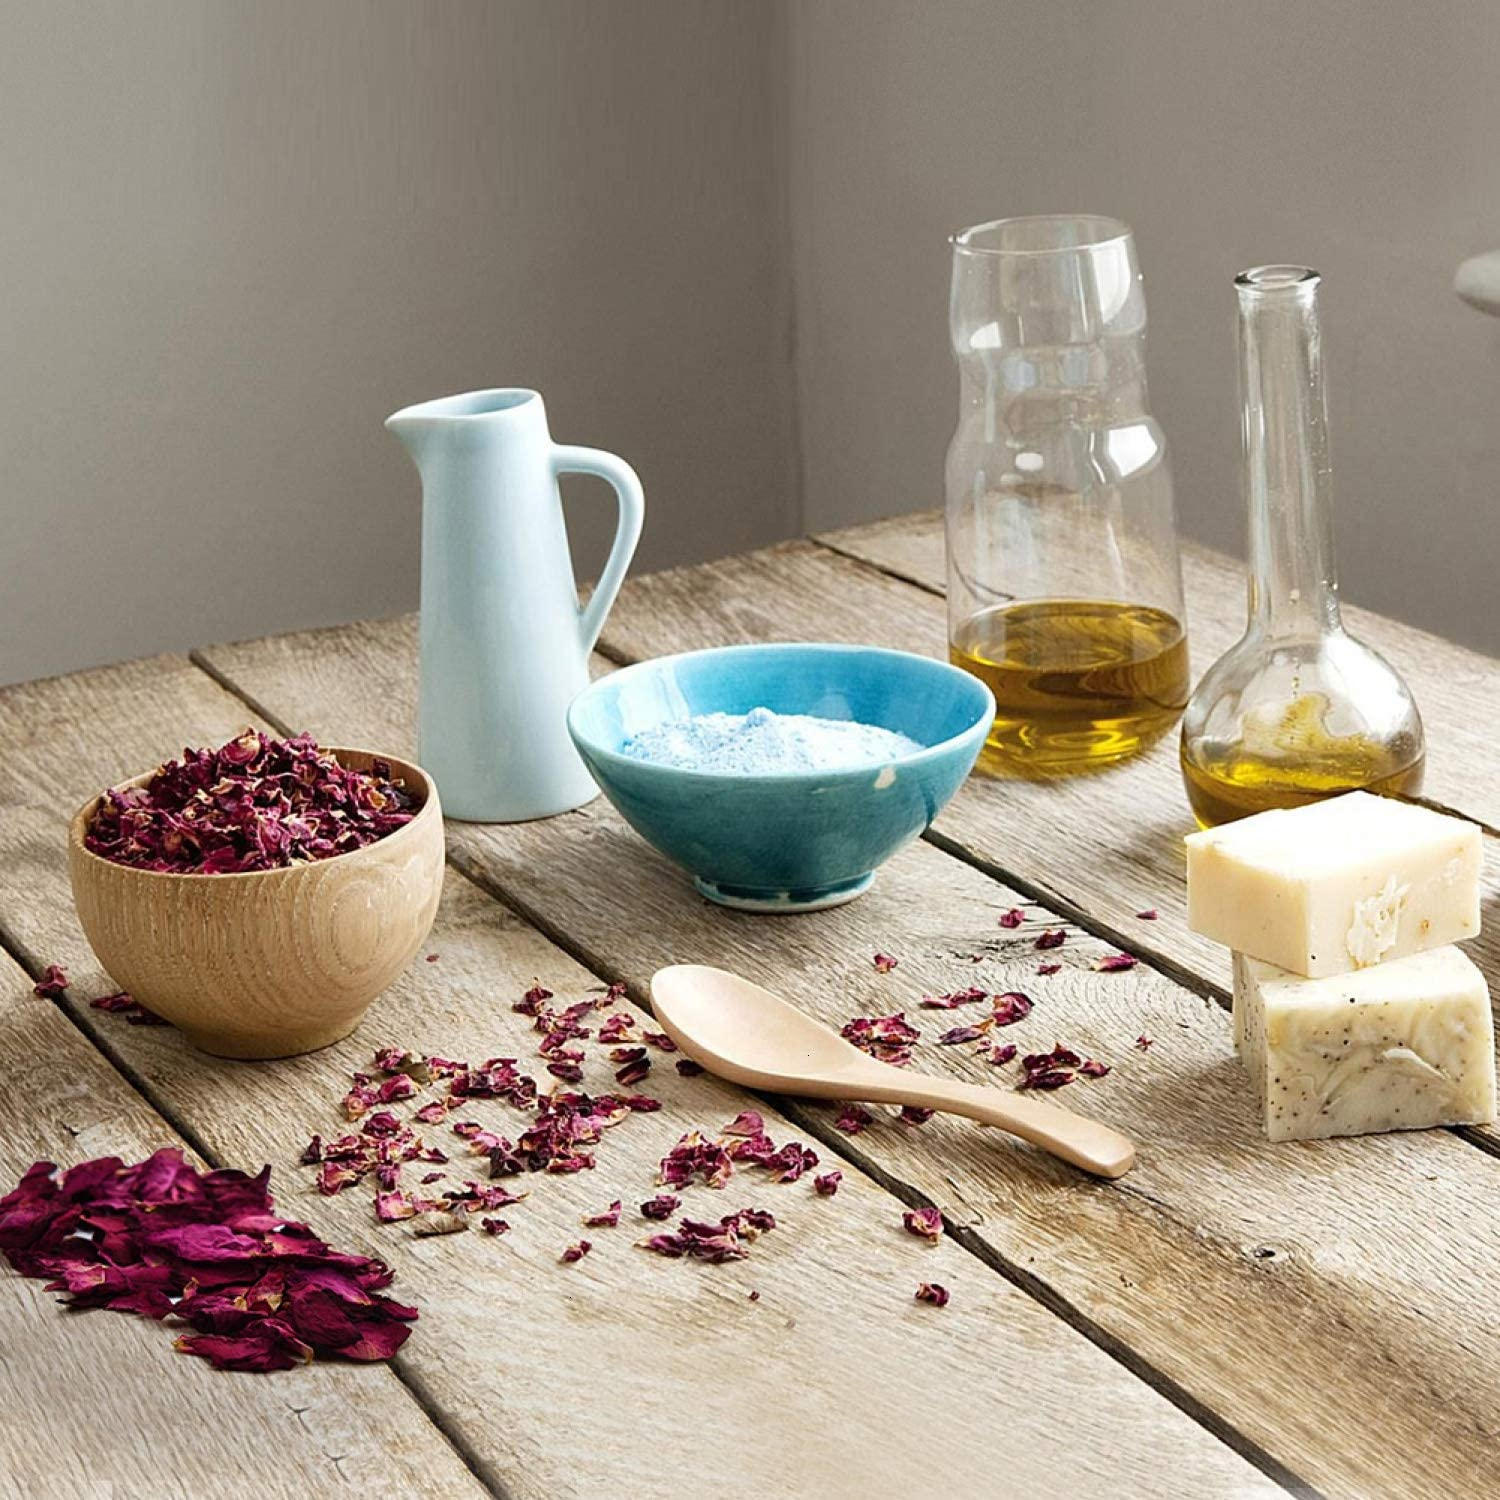 Soap Making Rose Petals Gomphrena Globosa and More YoleShy Dried Flowers 9Bag Include Dried Lavender Natural Dried Flower Herbs Kit for Bath Candle Making Jasmine Flower